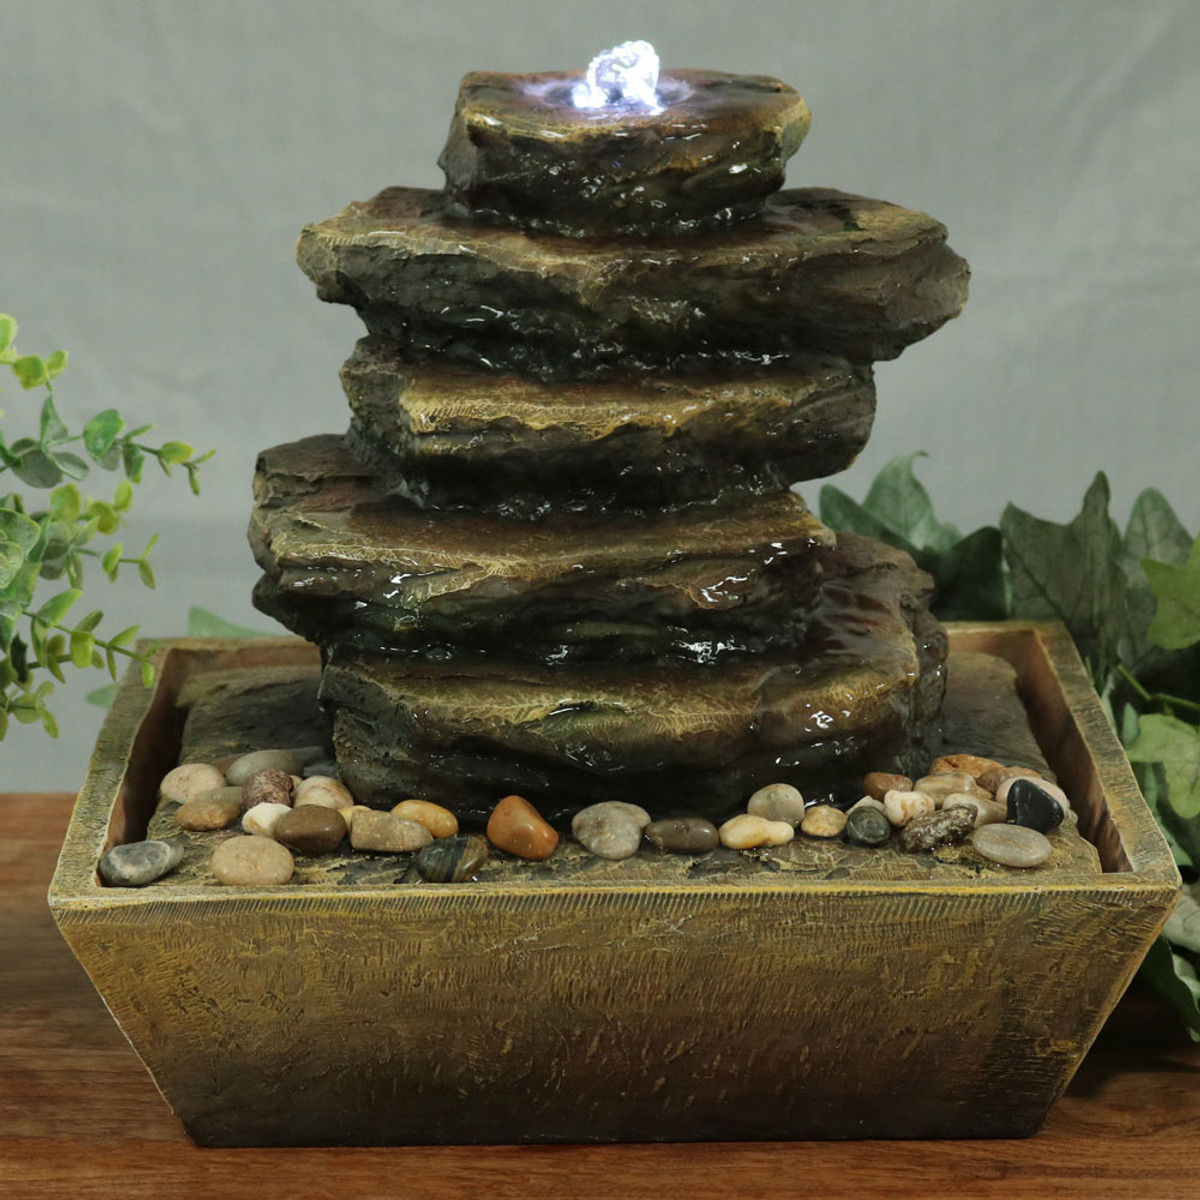 Charmant Sunnydaze Cascading Rocks Tabletop Fountain With LED Lights, 12 Inch Tall